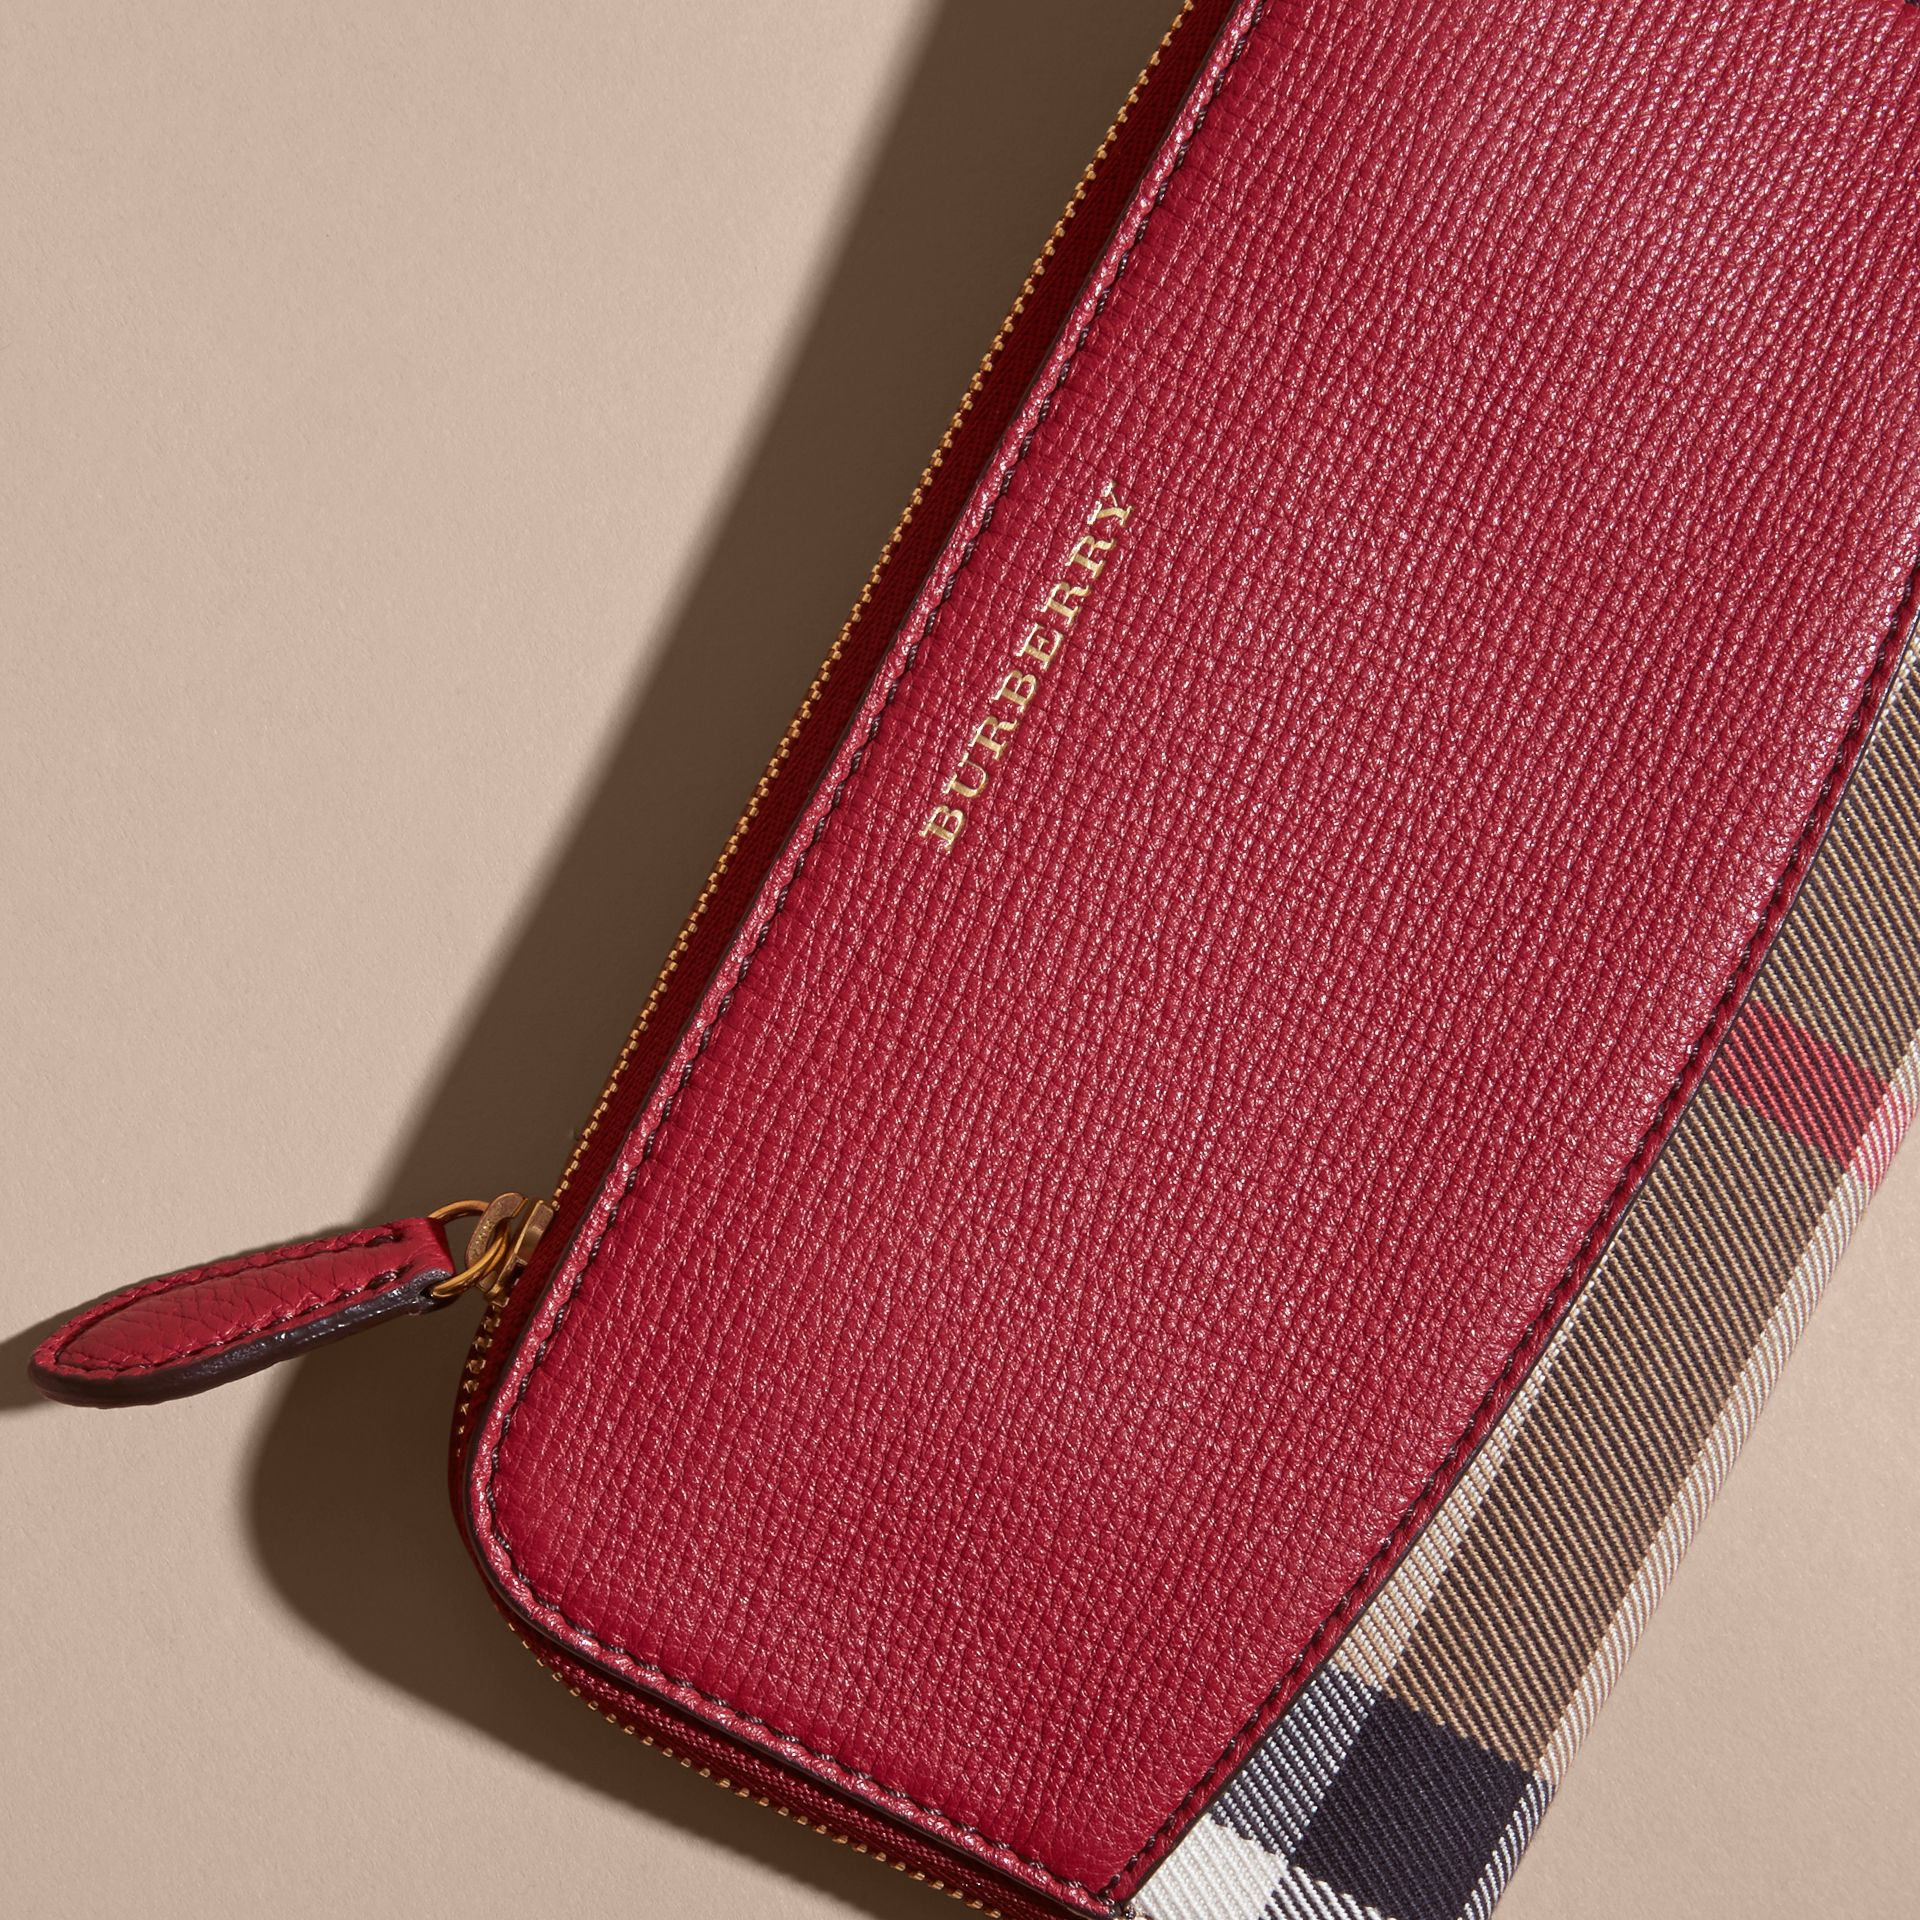 House Check and Leather Ziparound Wallet in Military Red - Women | Burberry Australia - gallery image 4